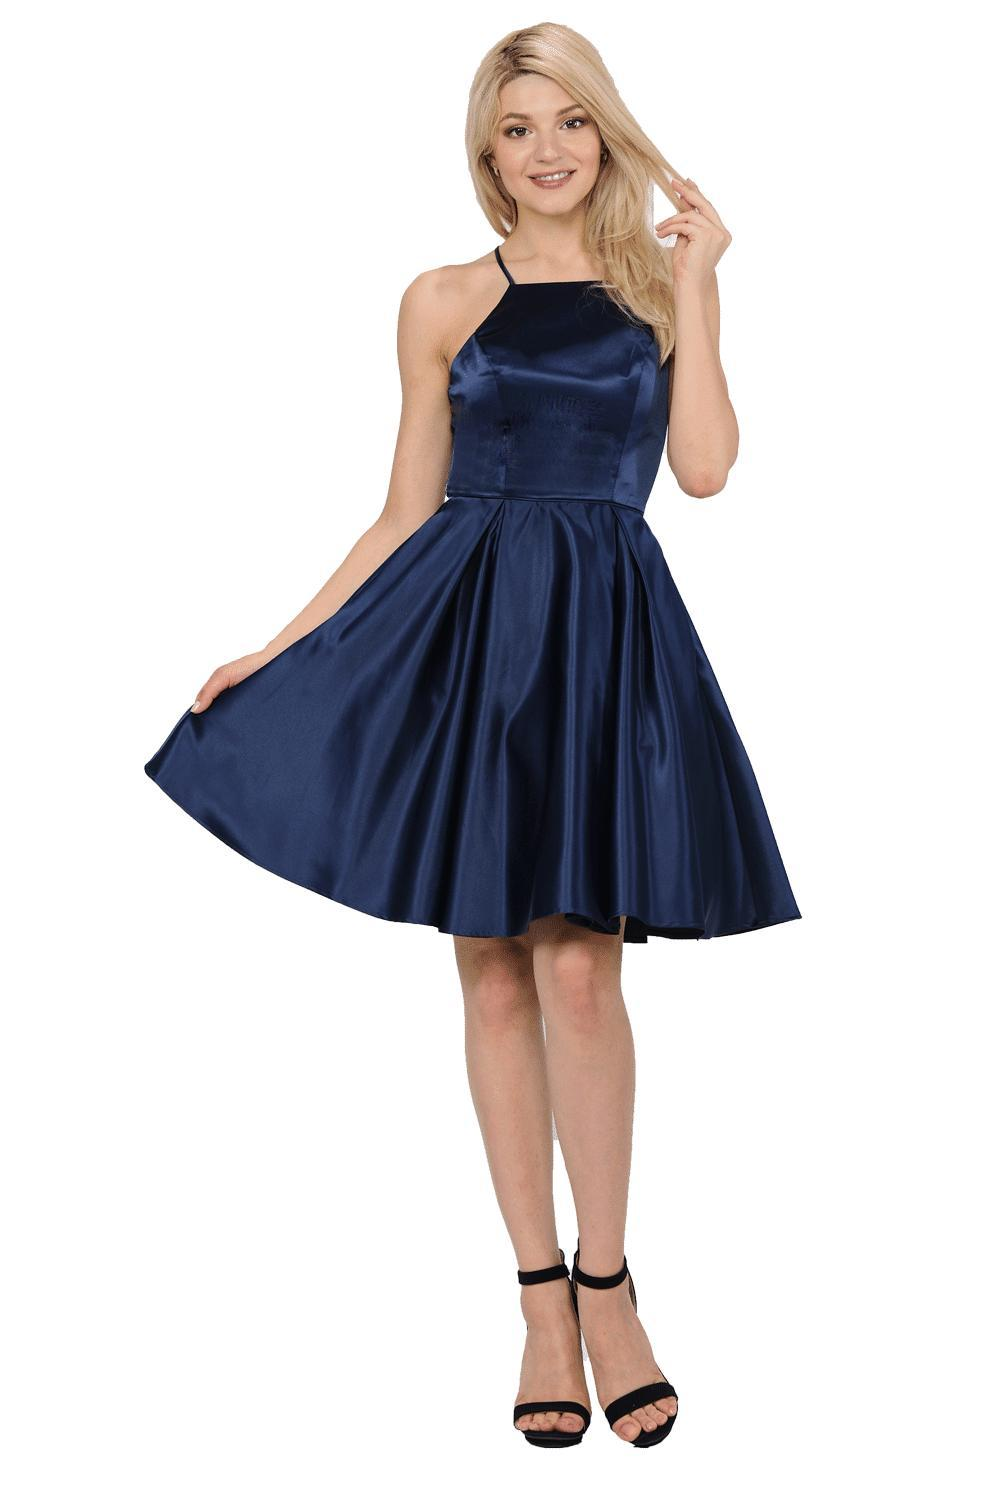 00fa0a9ad7 Simple Navy Homecoming Dress poly #8312-Simply Fab Dress ...